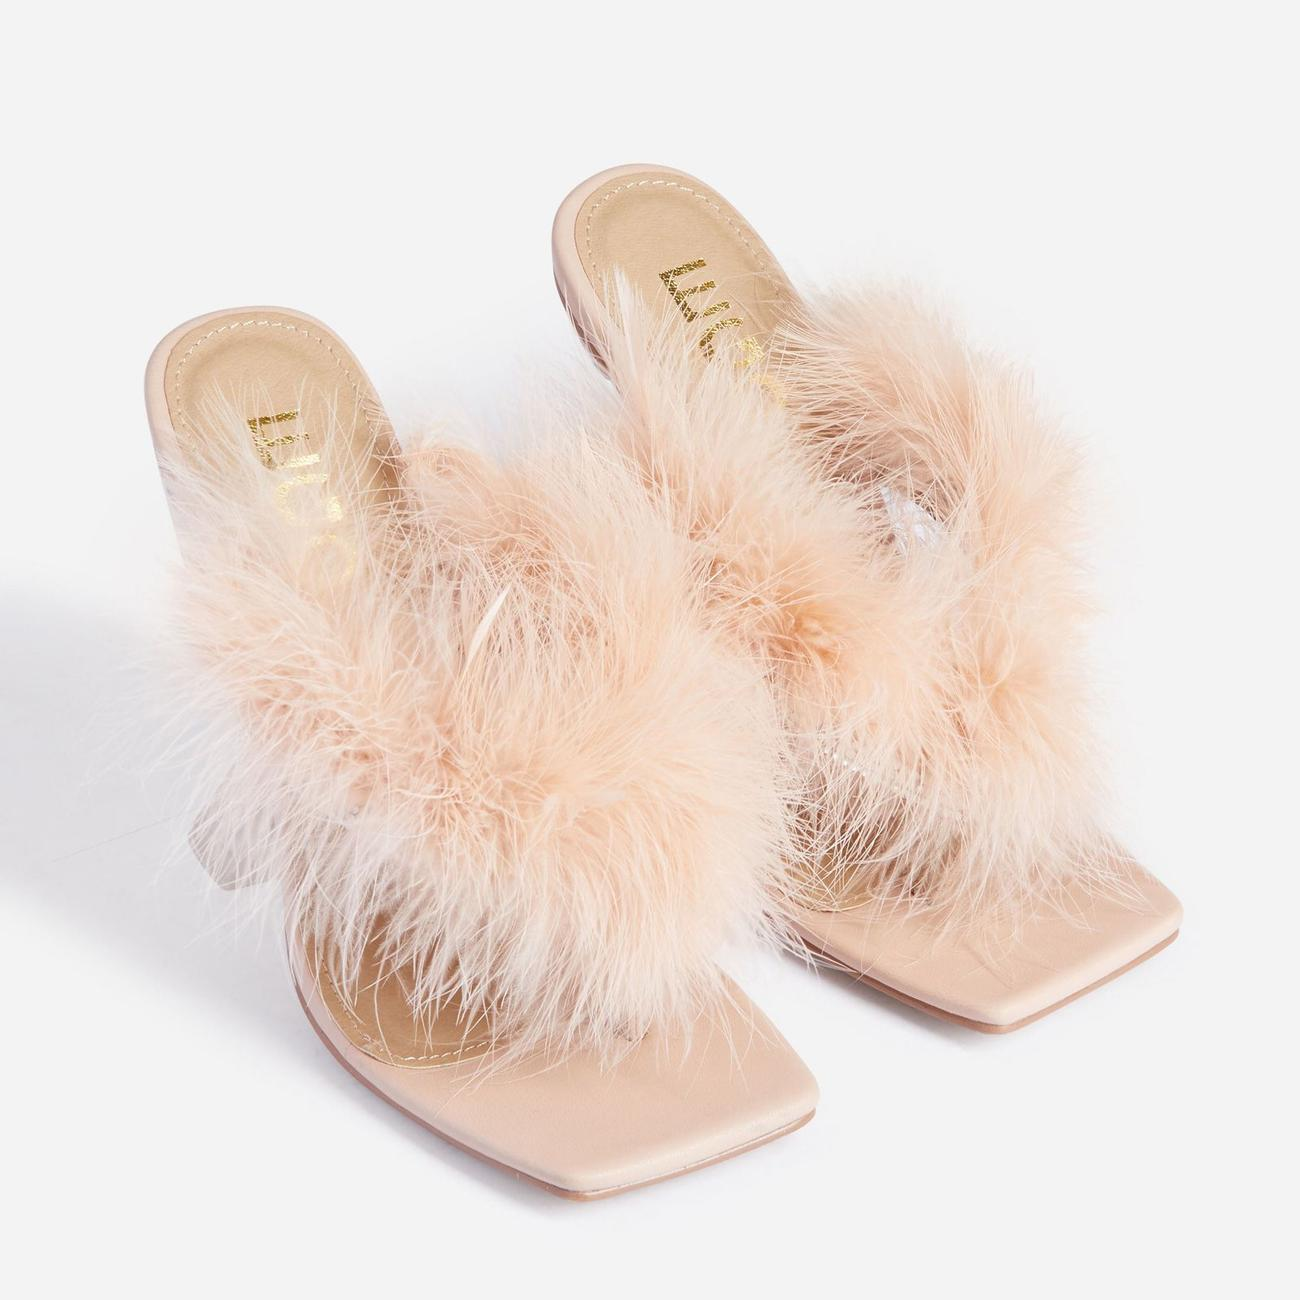 Rich-AF Diamante Detail Fluffy Square Toe Clear Perspex Pyramid Heel Mule In Nude Faux Leather Image 2